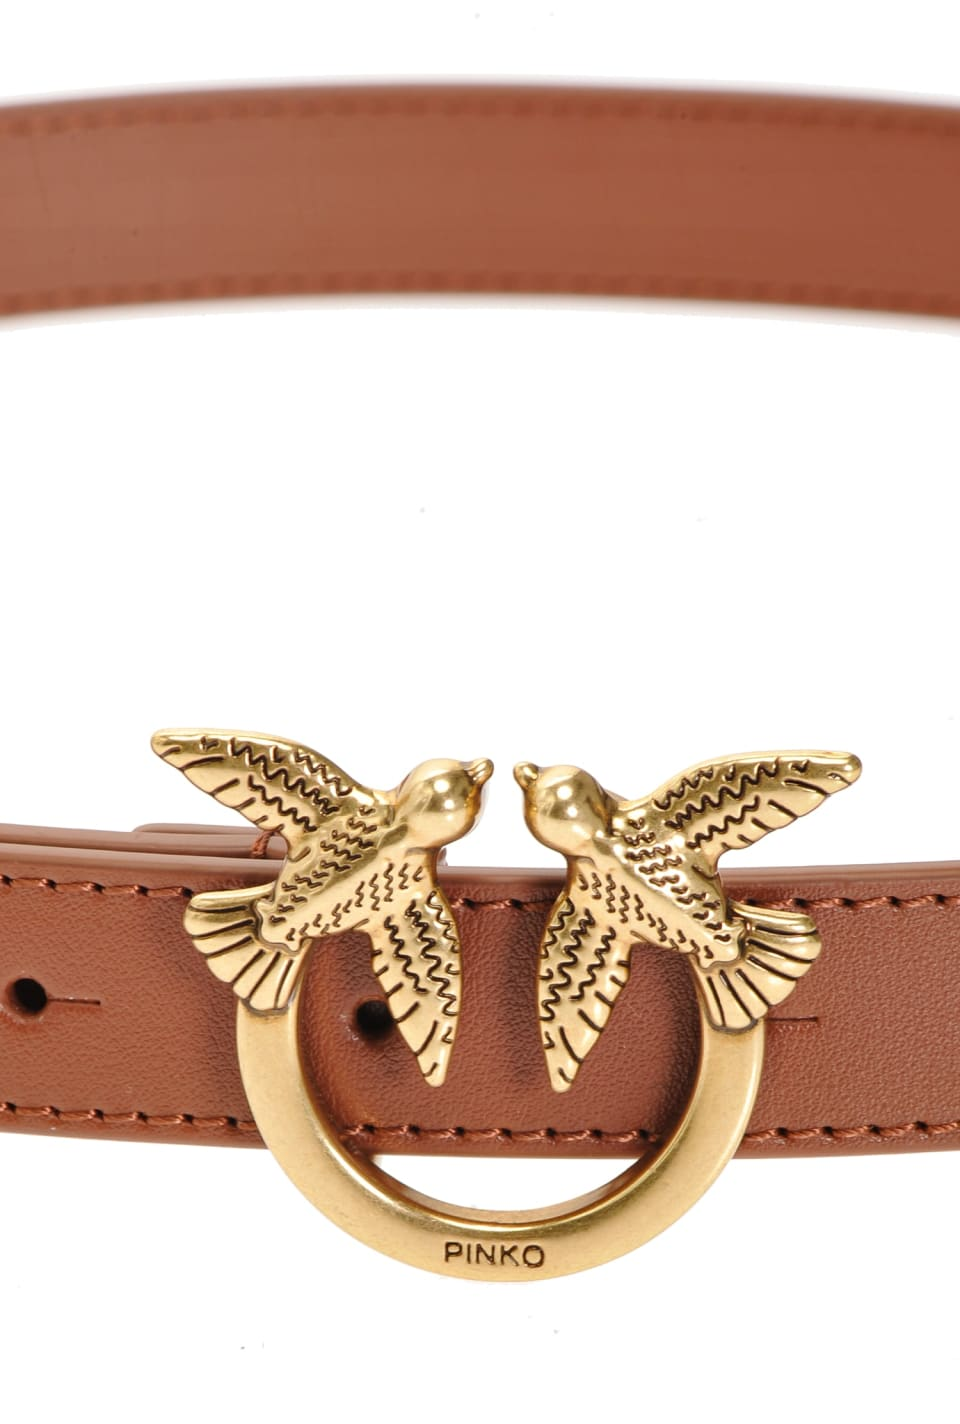 Narrow belt with Love Birds buckle - Pinko